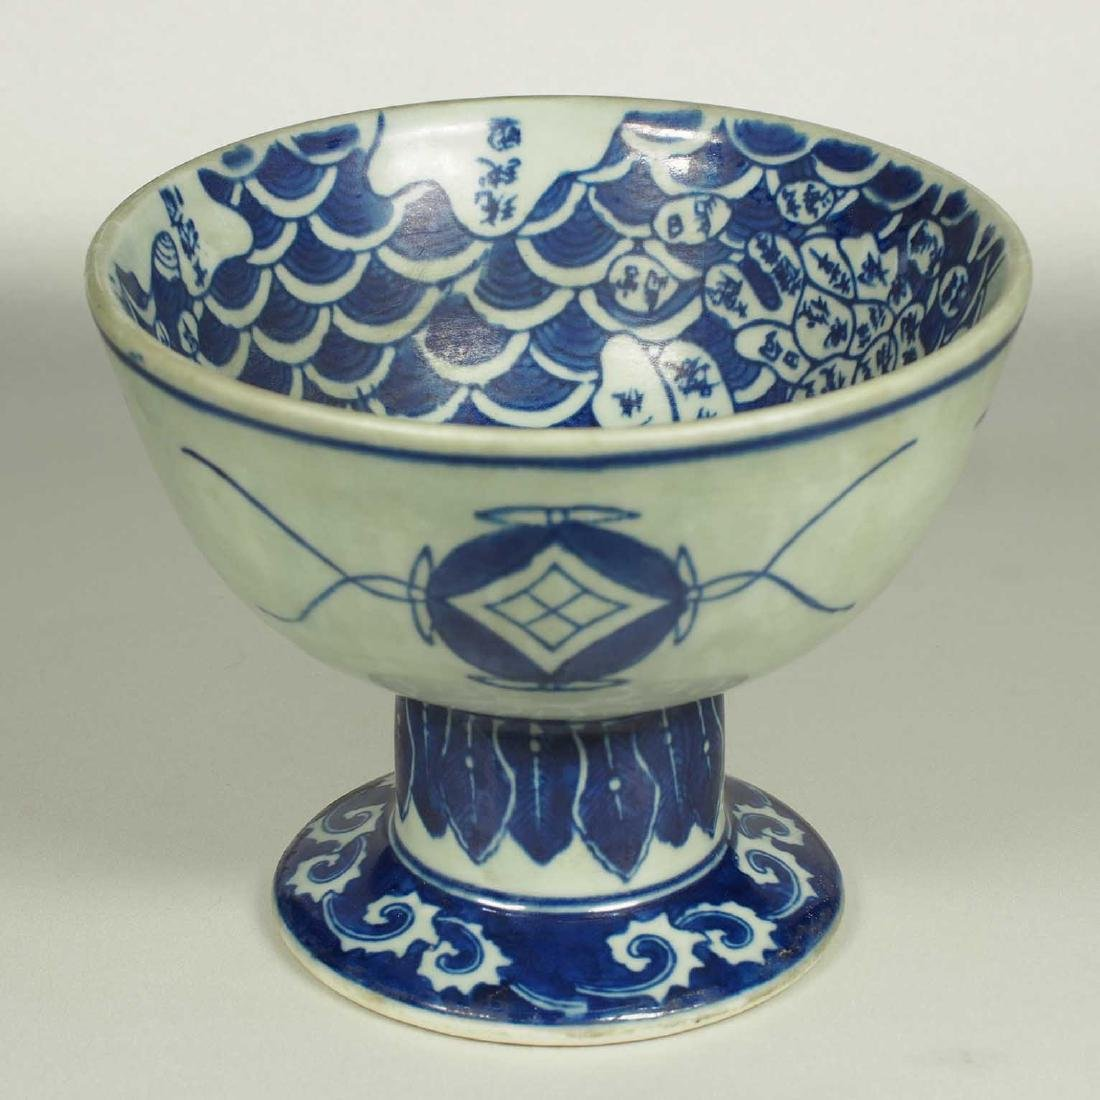 Stembowl with Territorial Map, late Qing Dynasty